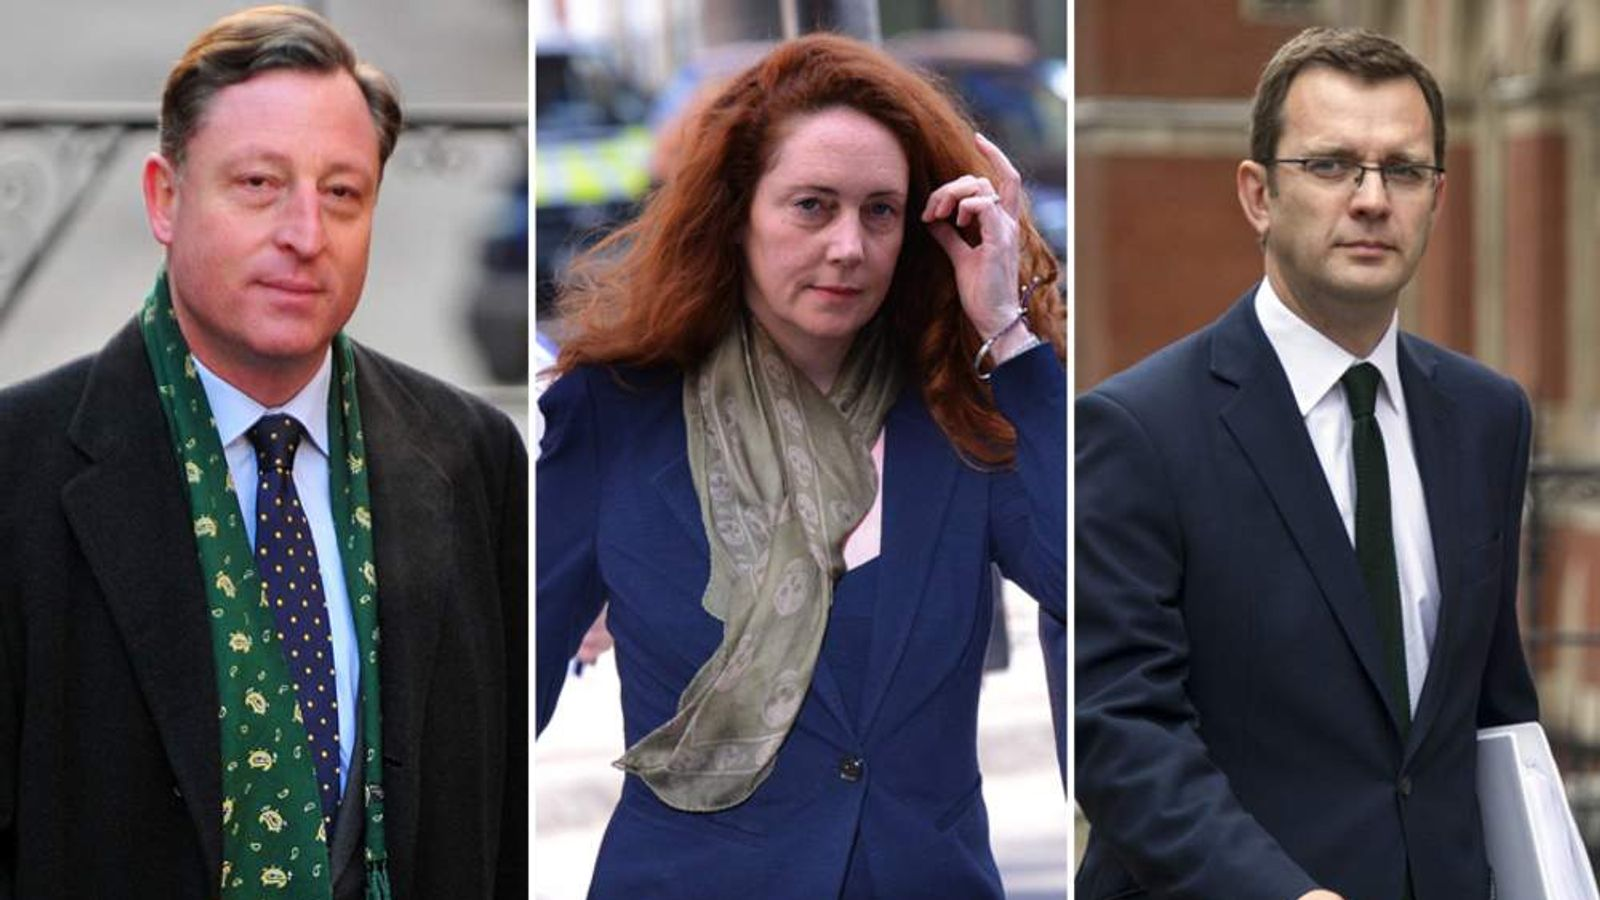 Neville Thurlbeck, Rebekah Brooks and Andy Coulson